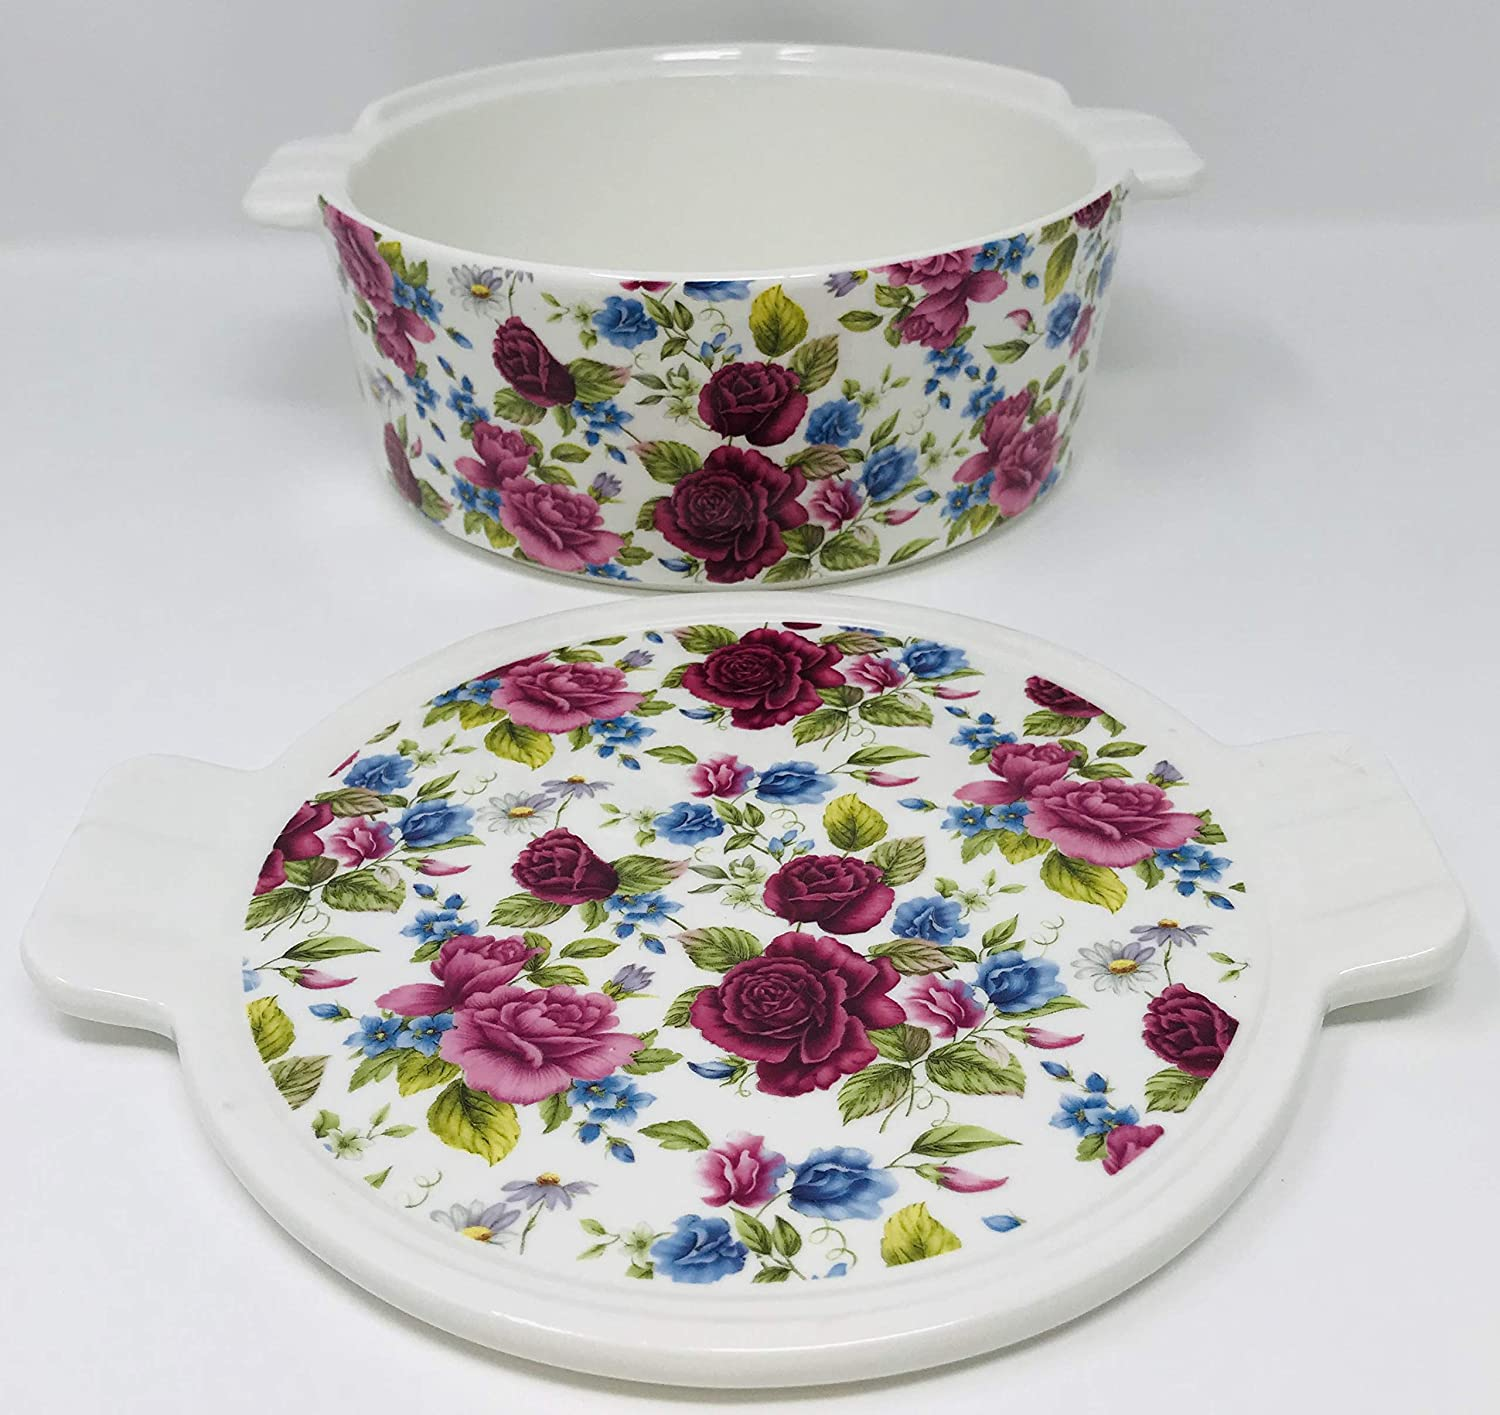 Round 8 x 3.25 inches Cranberry Pink /& Blue Roses Decorate This 3 in 1 Oven Safe Lidded Porcelain Baking Dish Casserole Use The Lid for A Tray Or Trivet